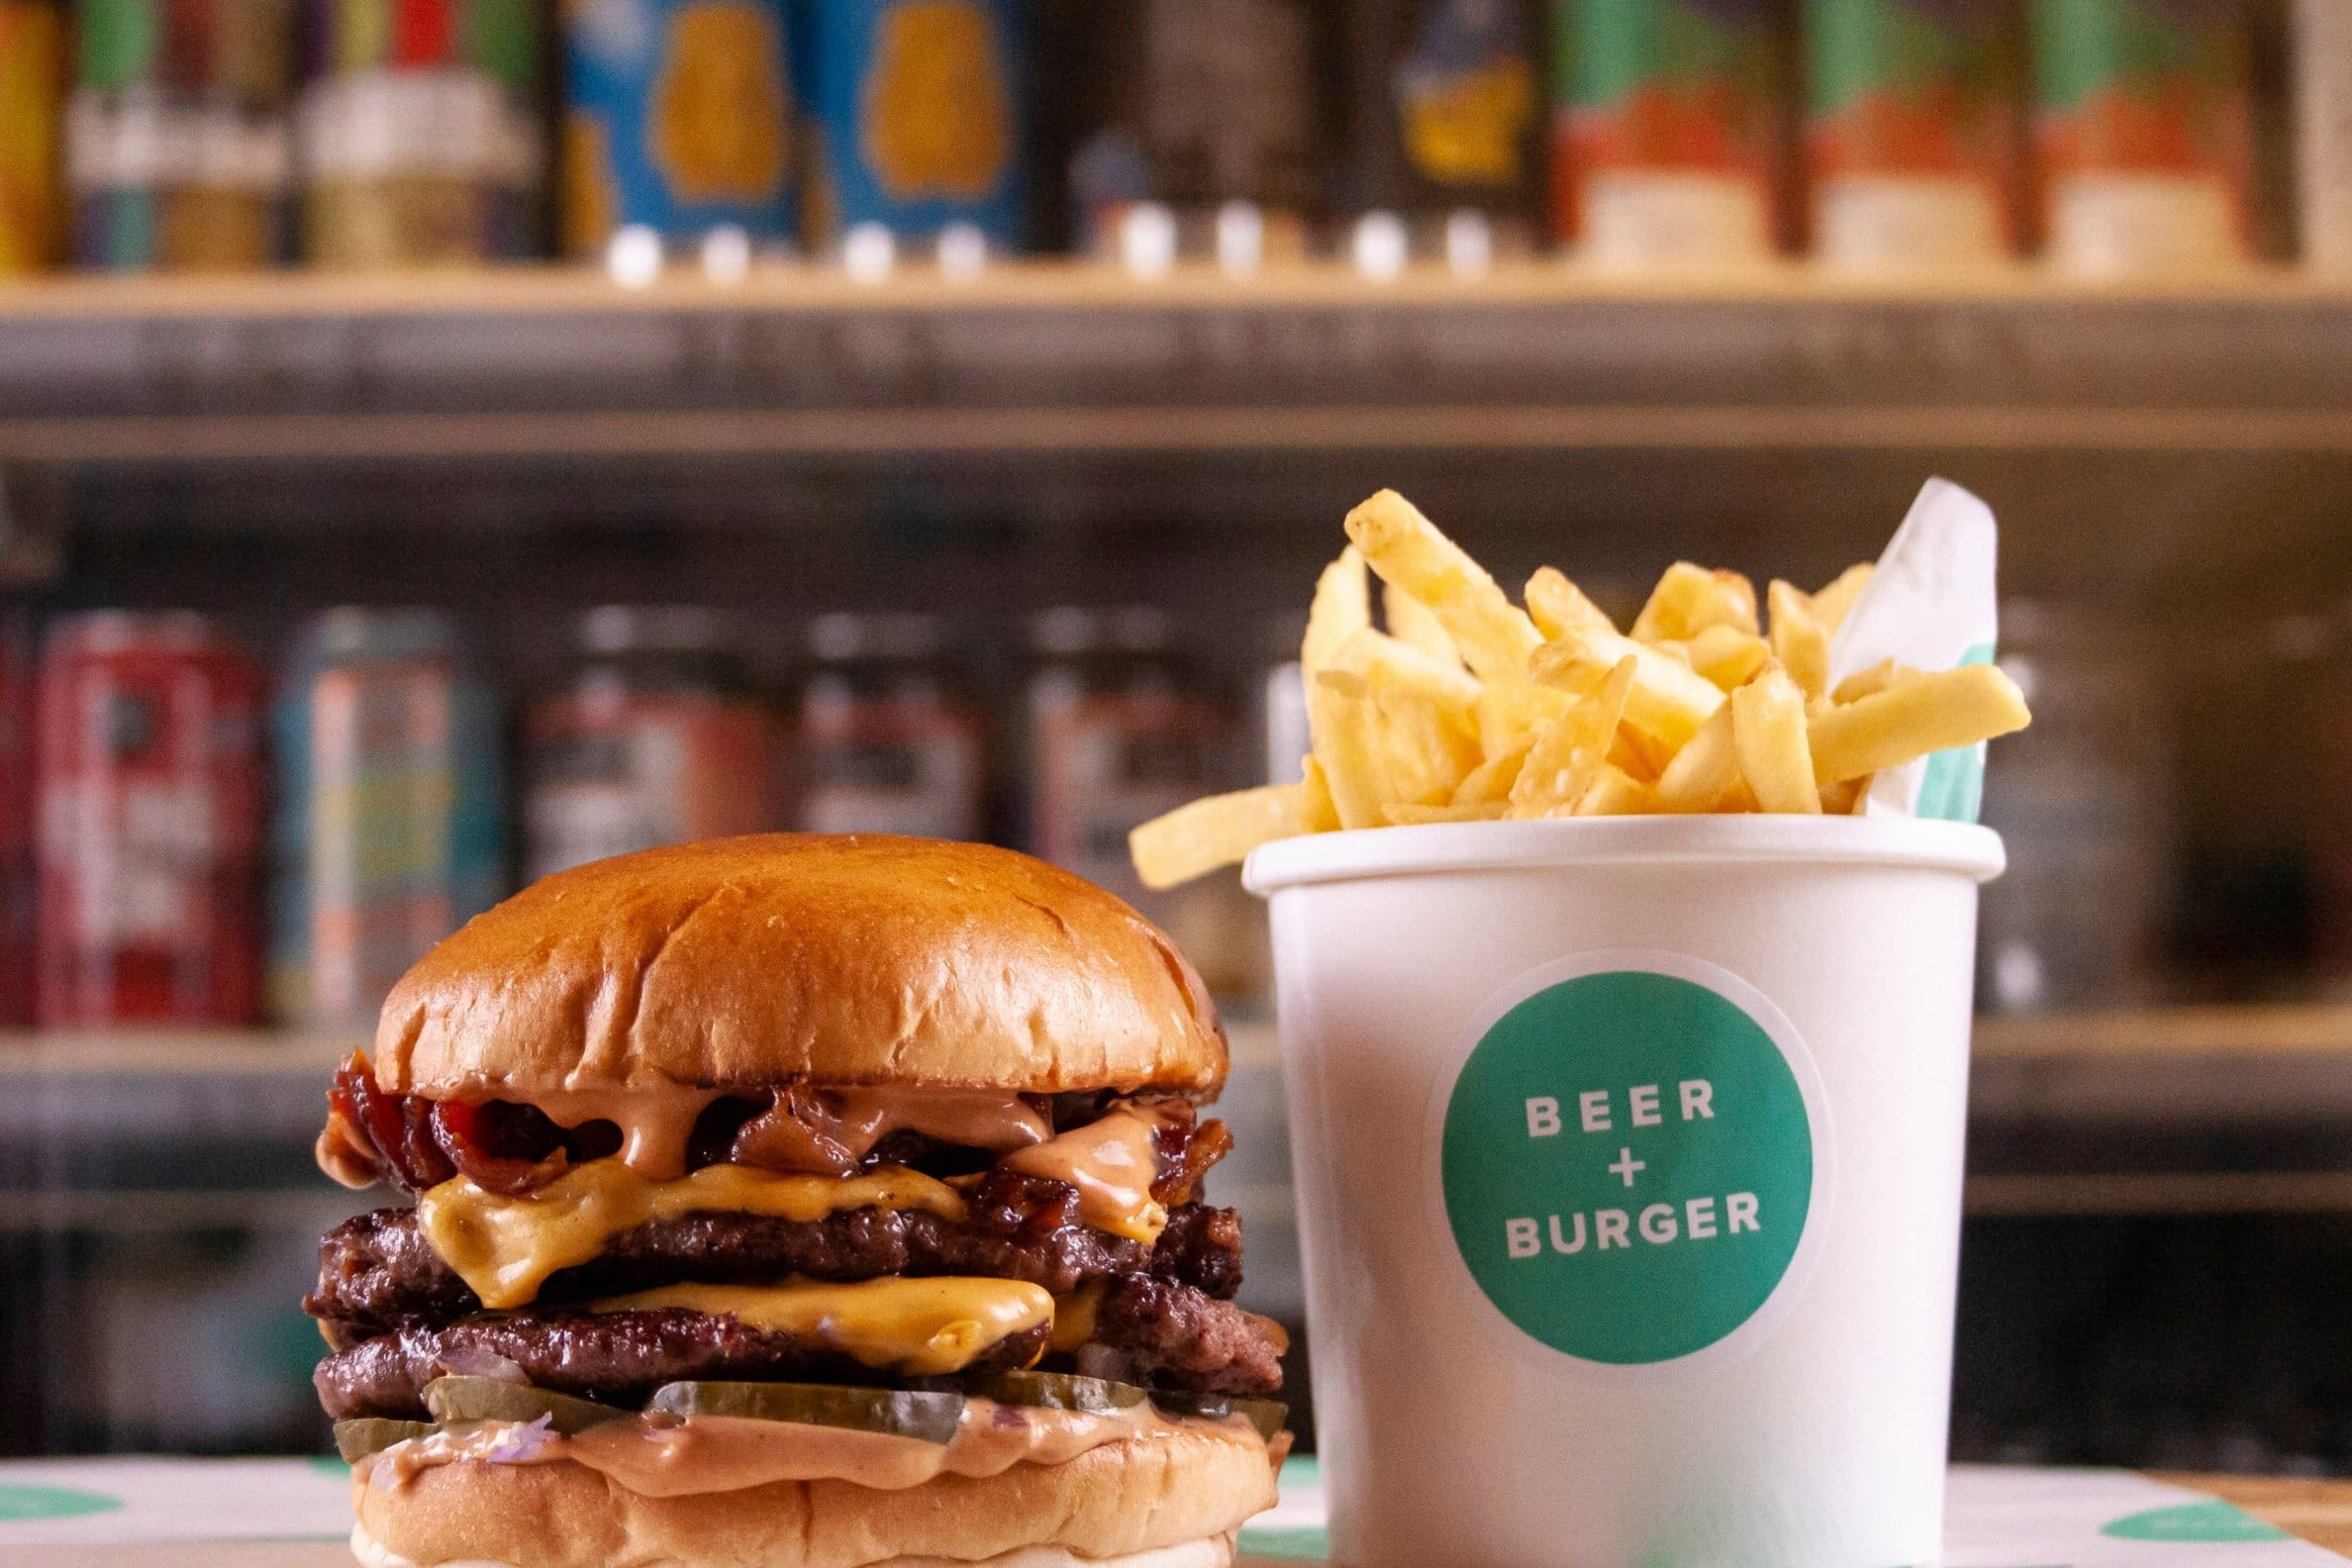 Beer & Burger London | Where to eat alone in London | Clink Hostels